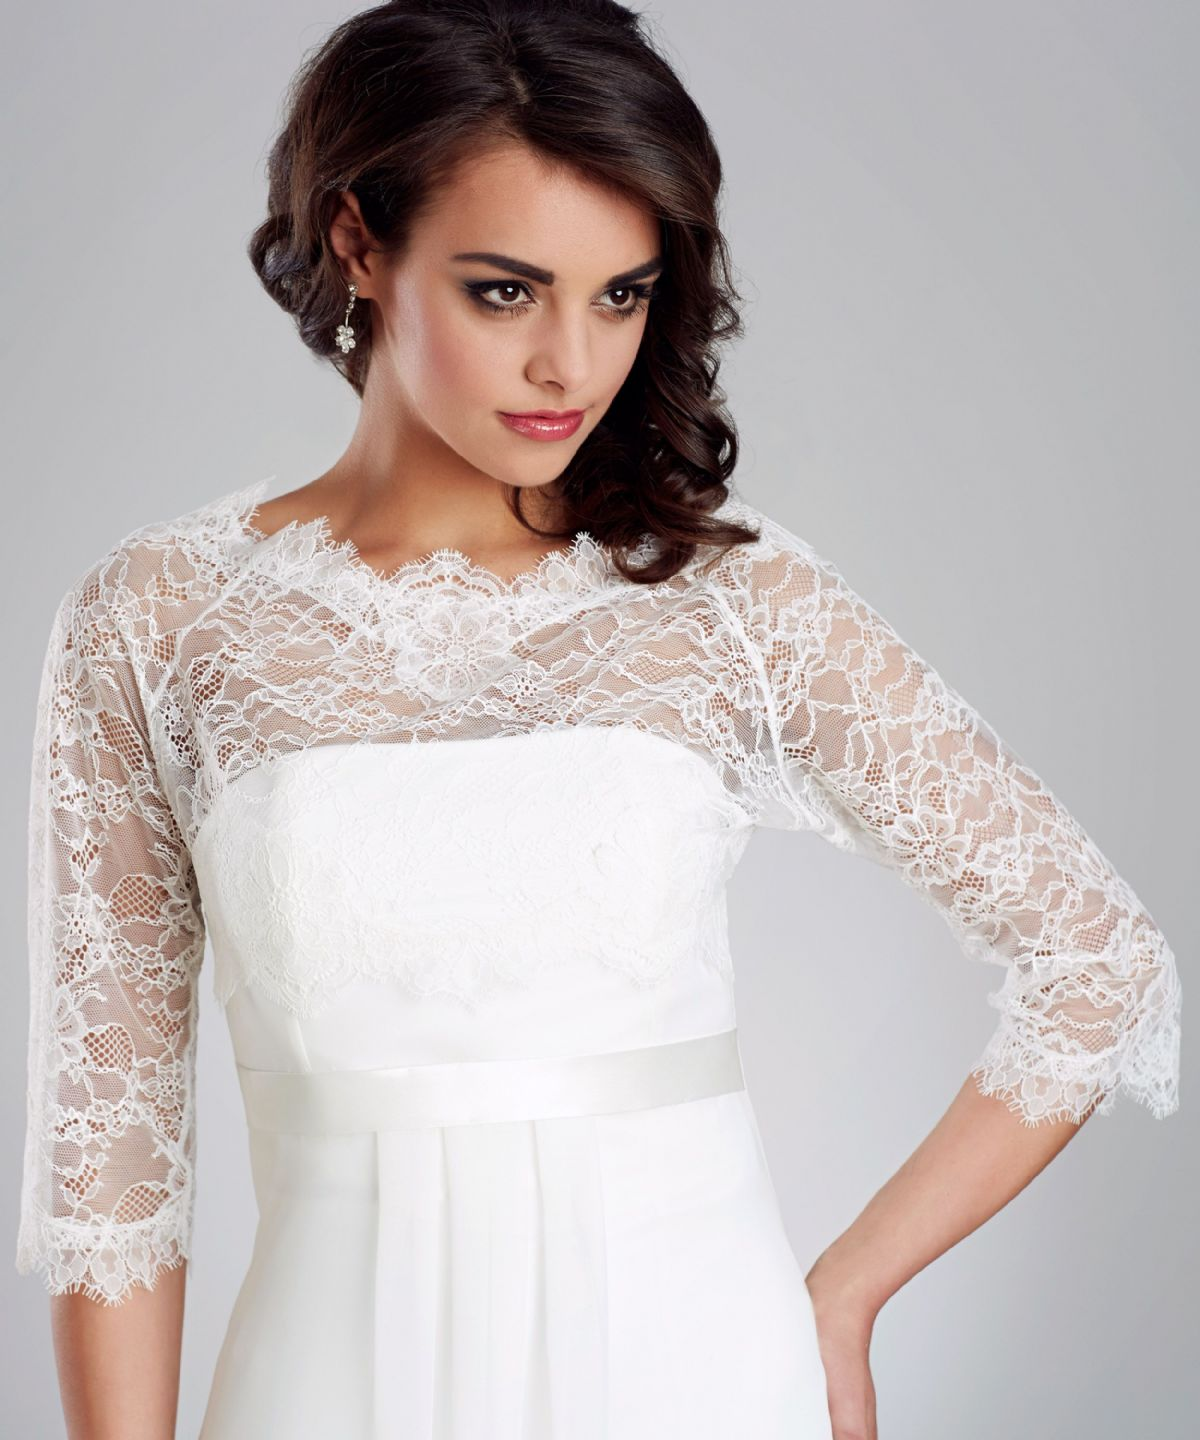 strapless wedding dress with lace jacket and chapel train